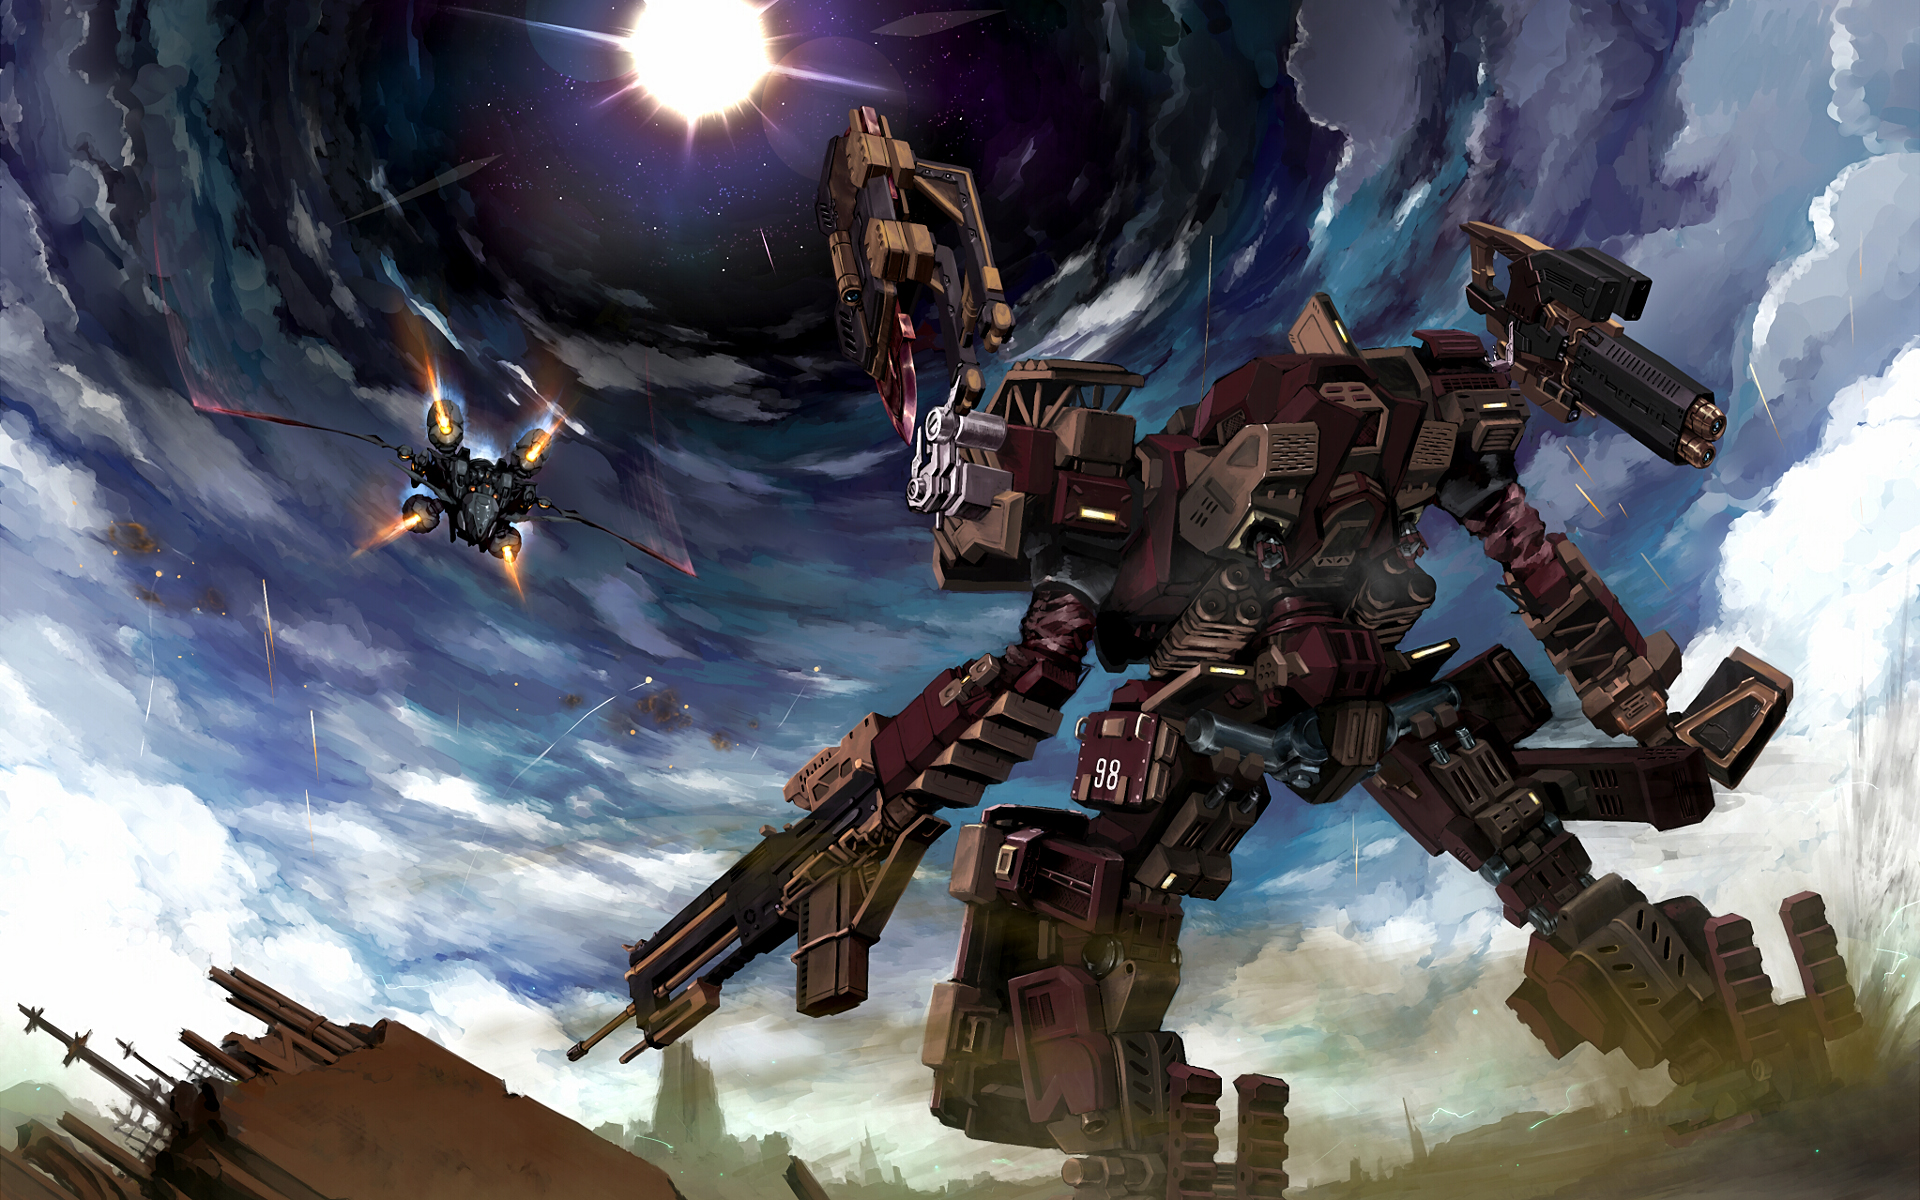 74 Armored Core Wallpaper On Wallpapersafari